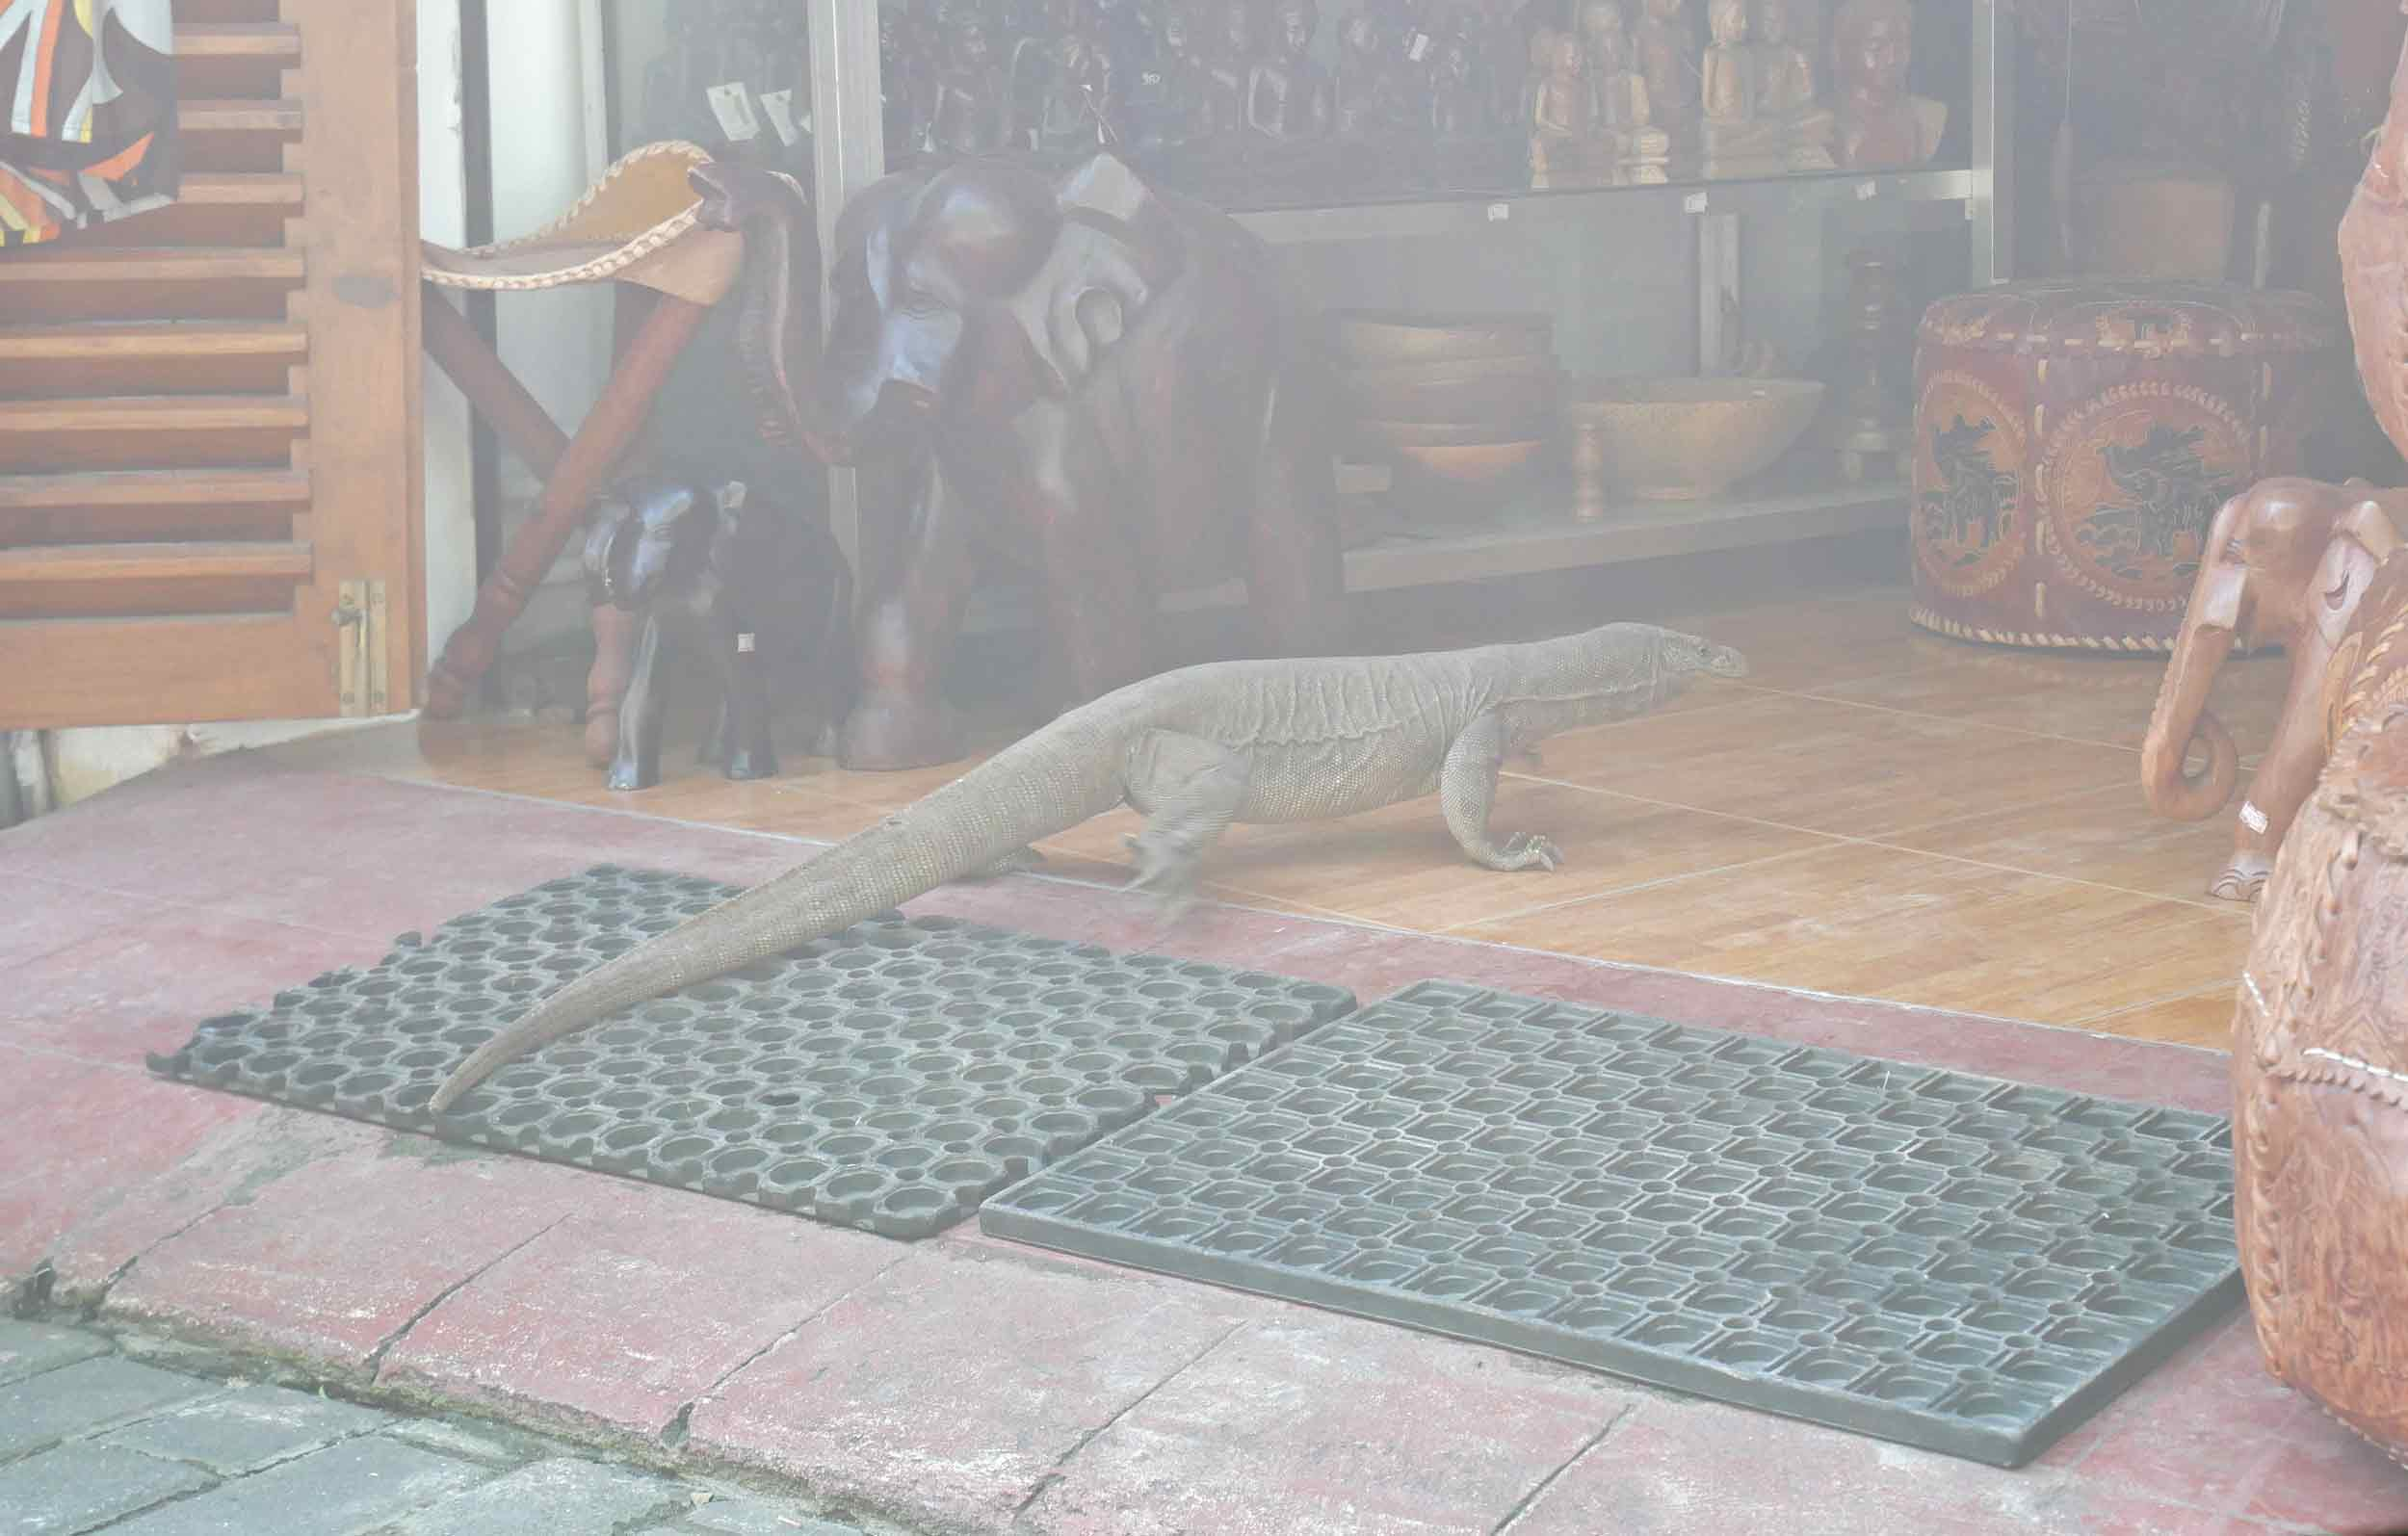 A monitor lizard decided to have a browse in a local shop.